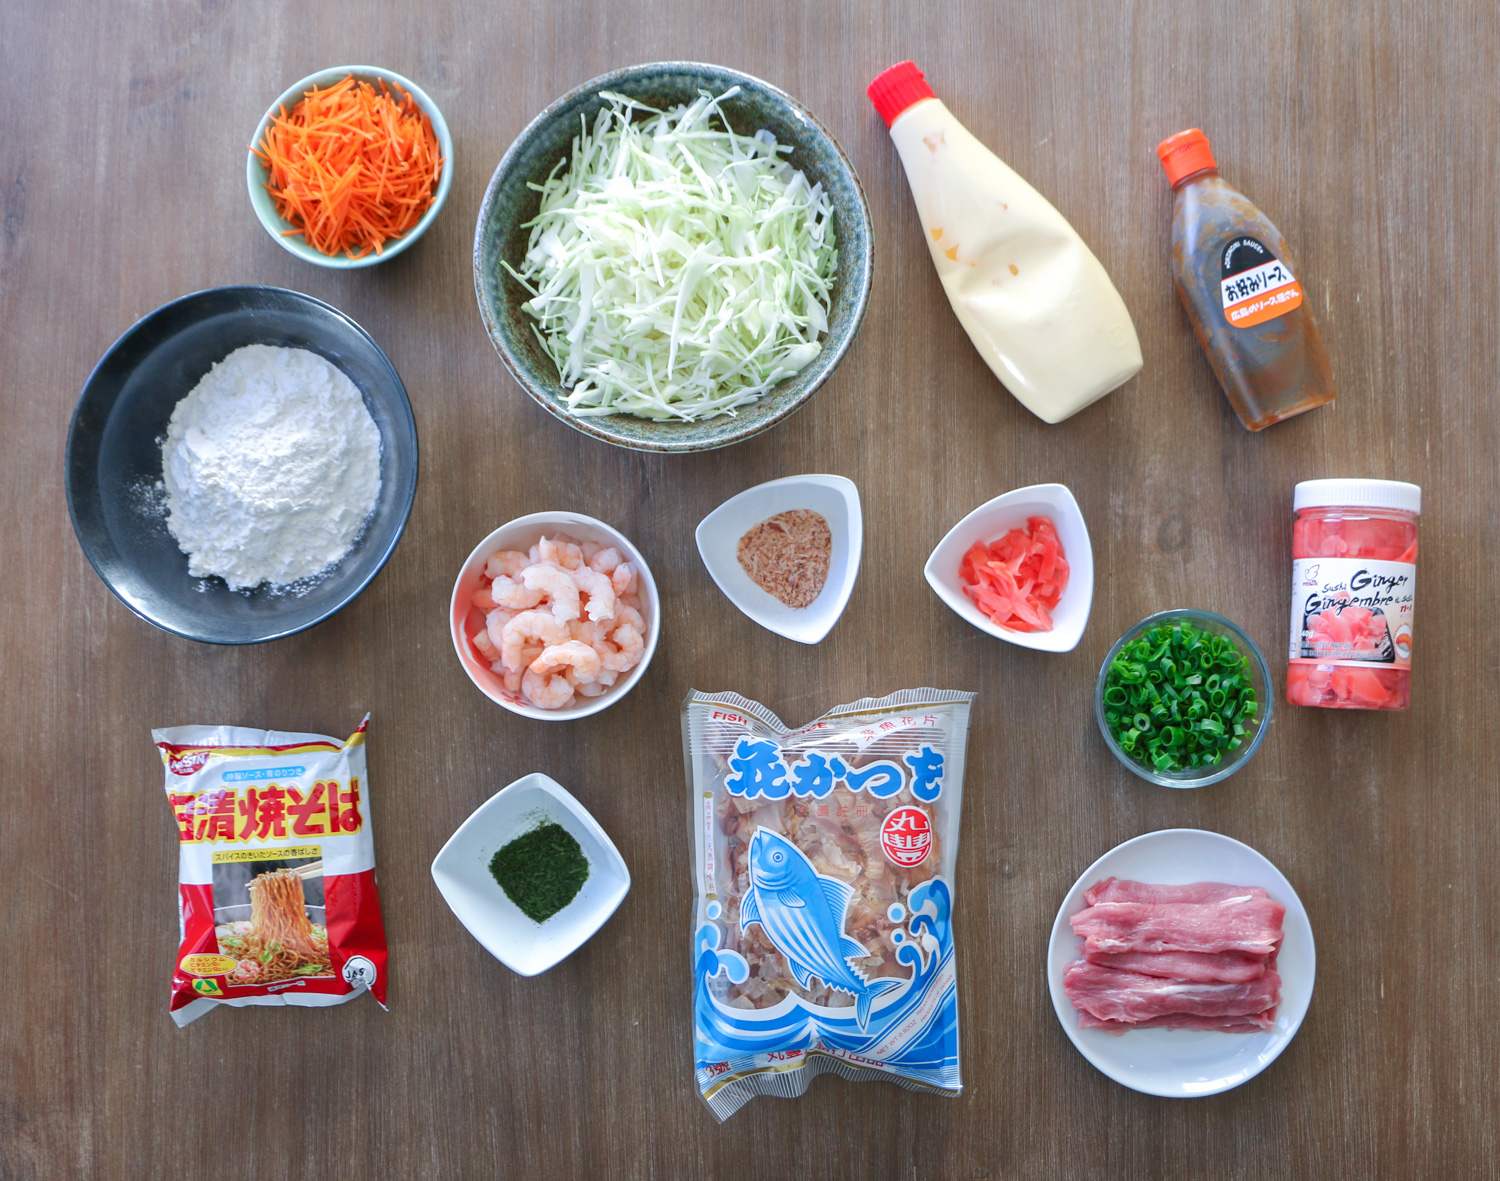 Ingredients for Hiroshima style okonomiyaki